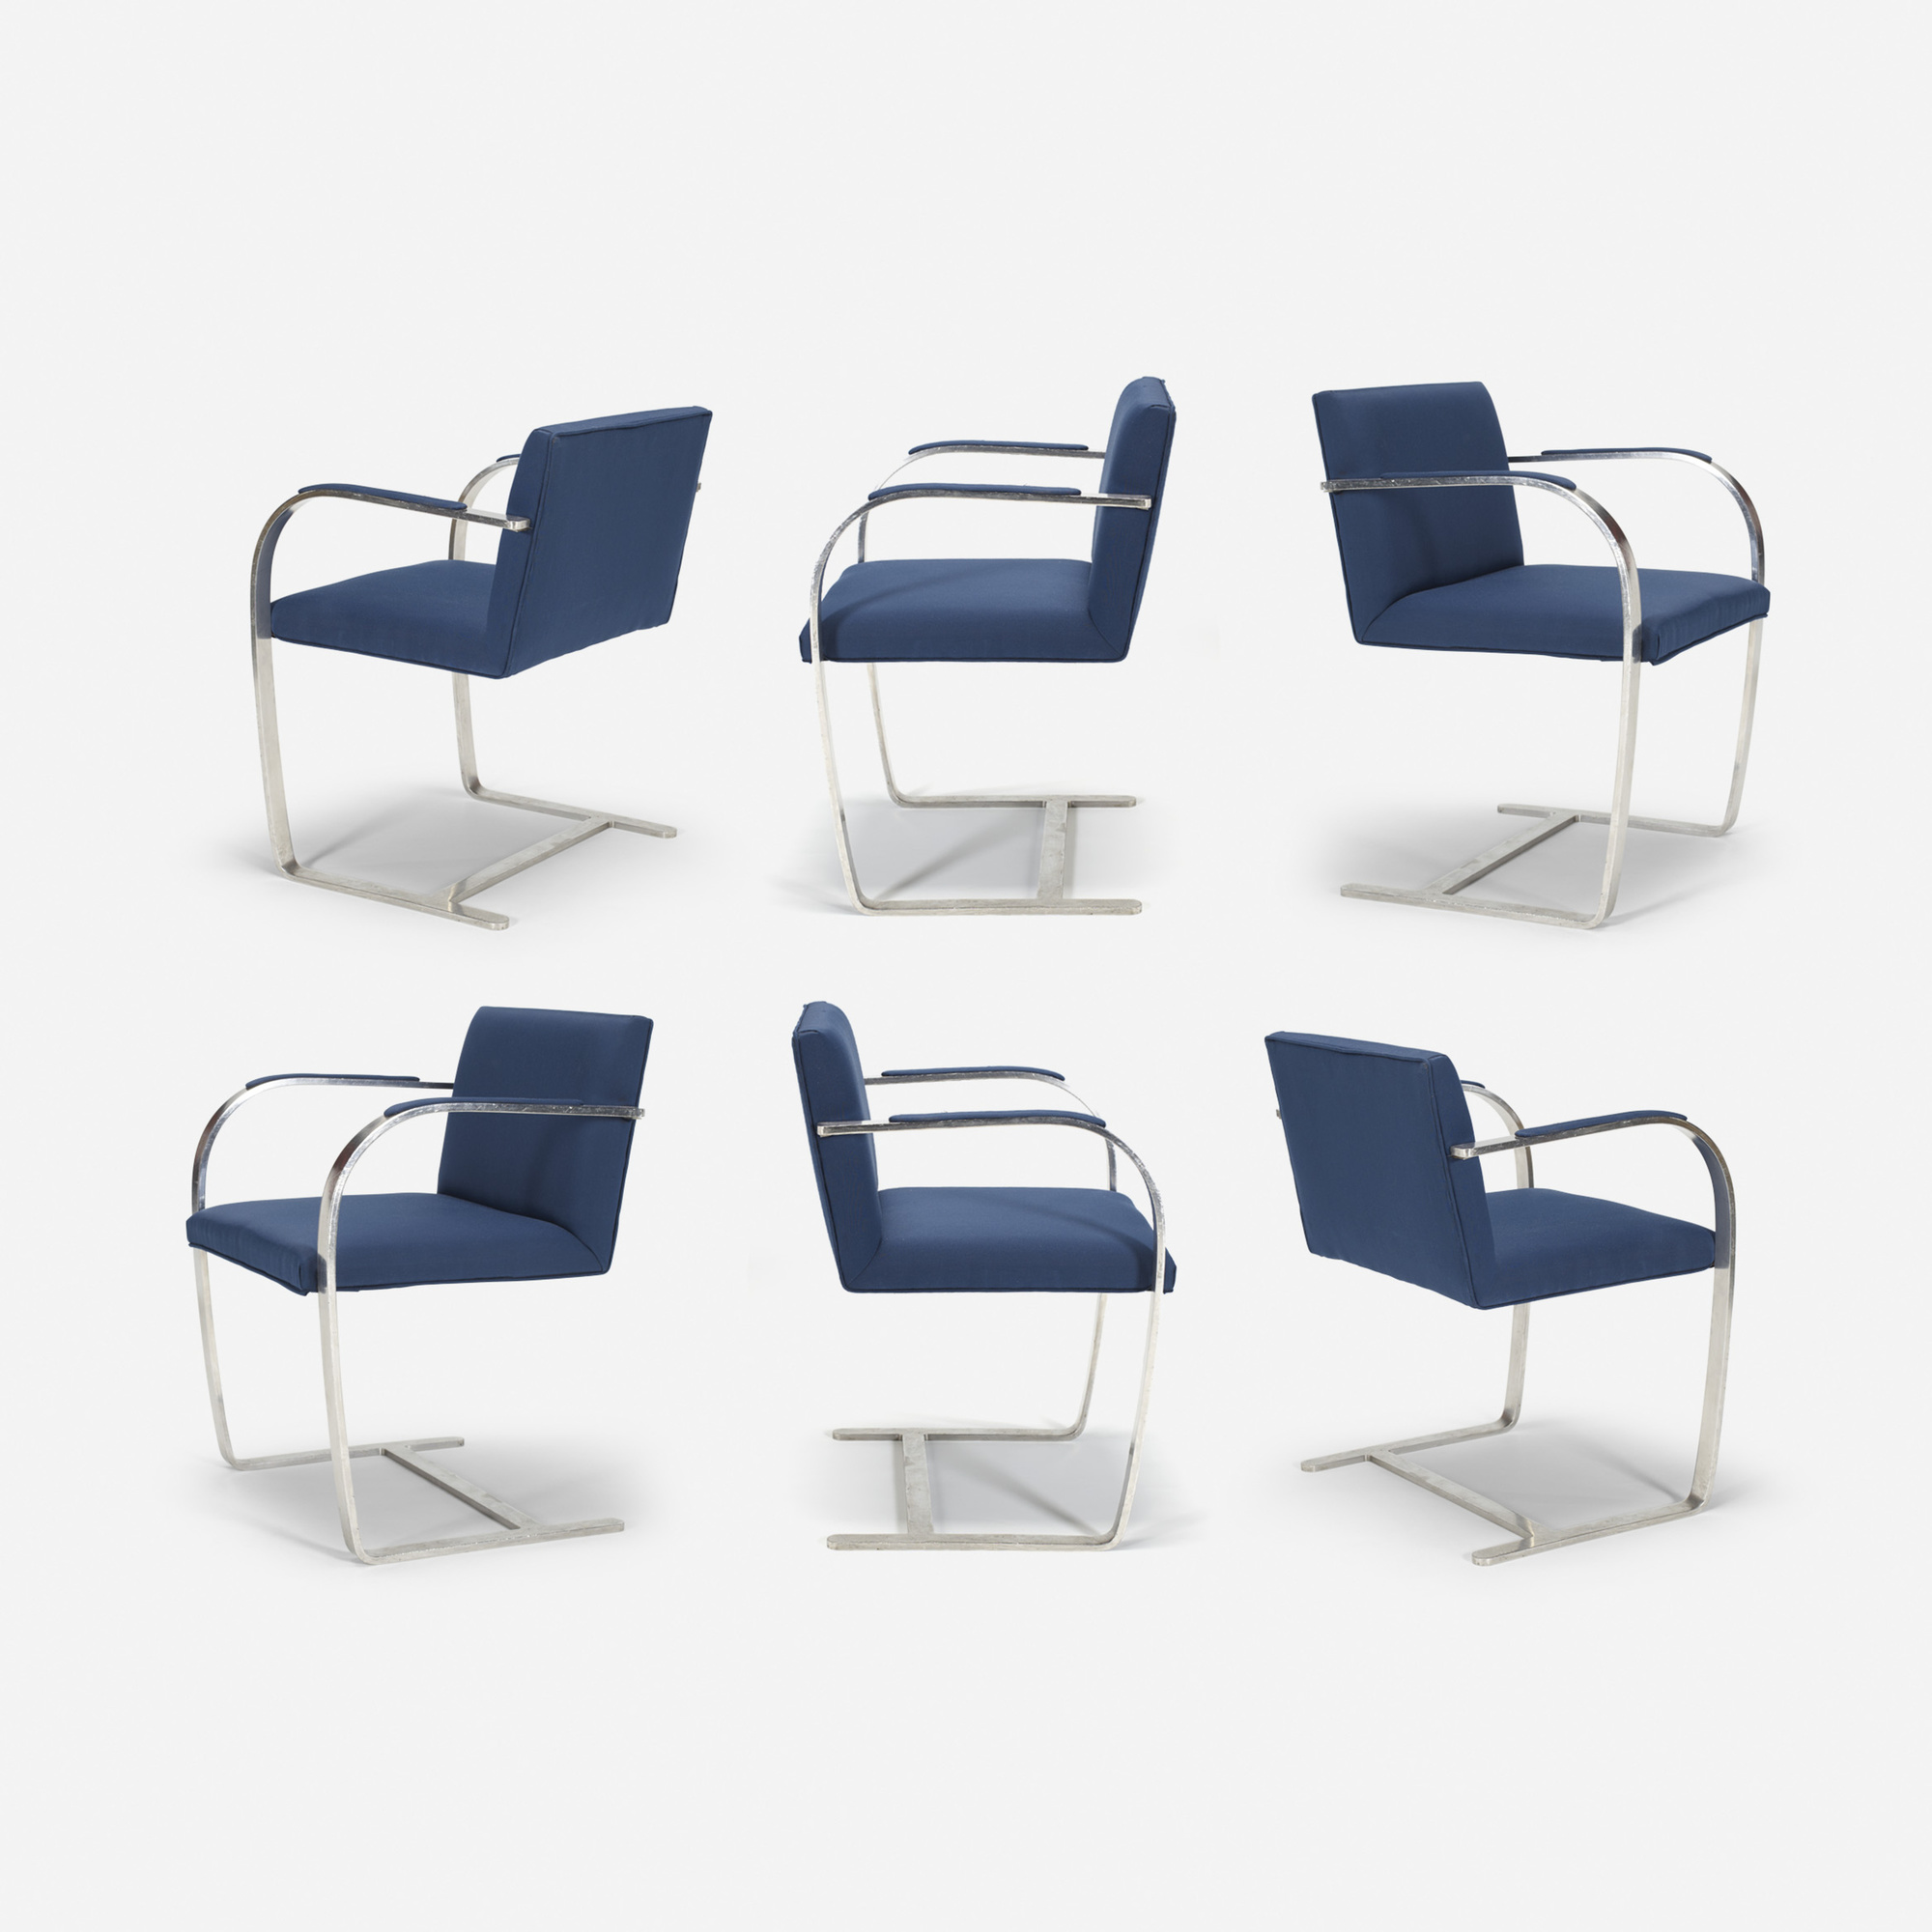 702: Ludwig Mies van der Rohe / Brno chairs from The Four Seasons, set of six (1 of 1)